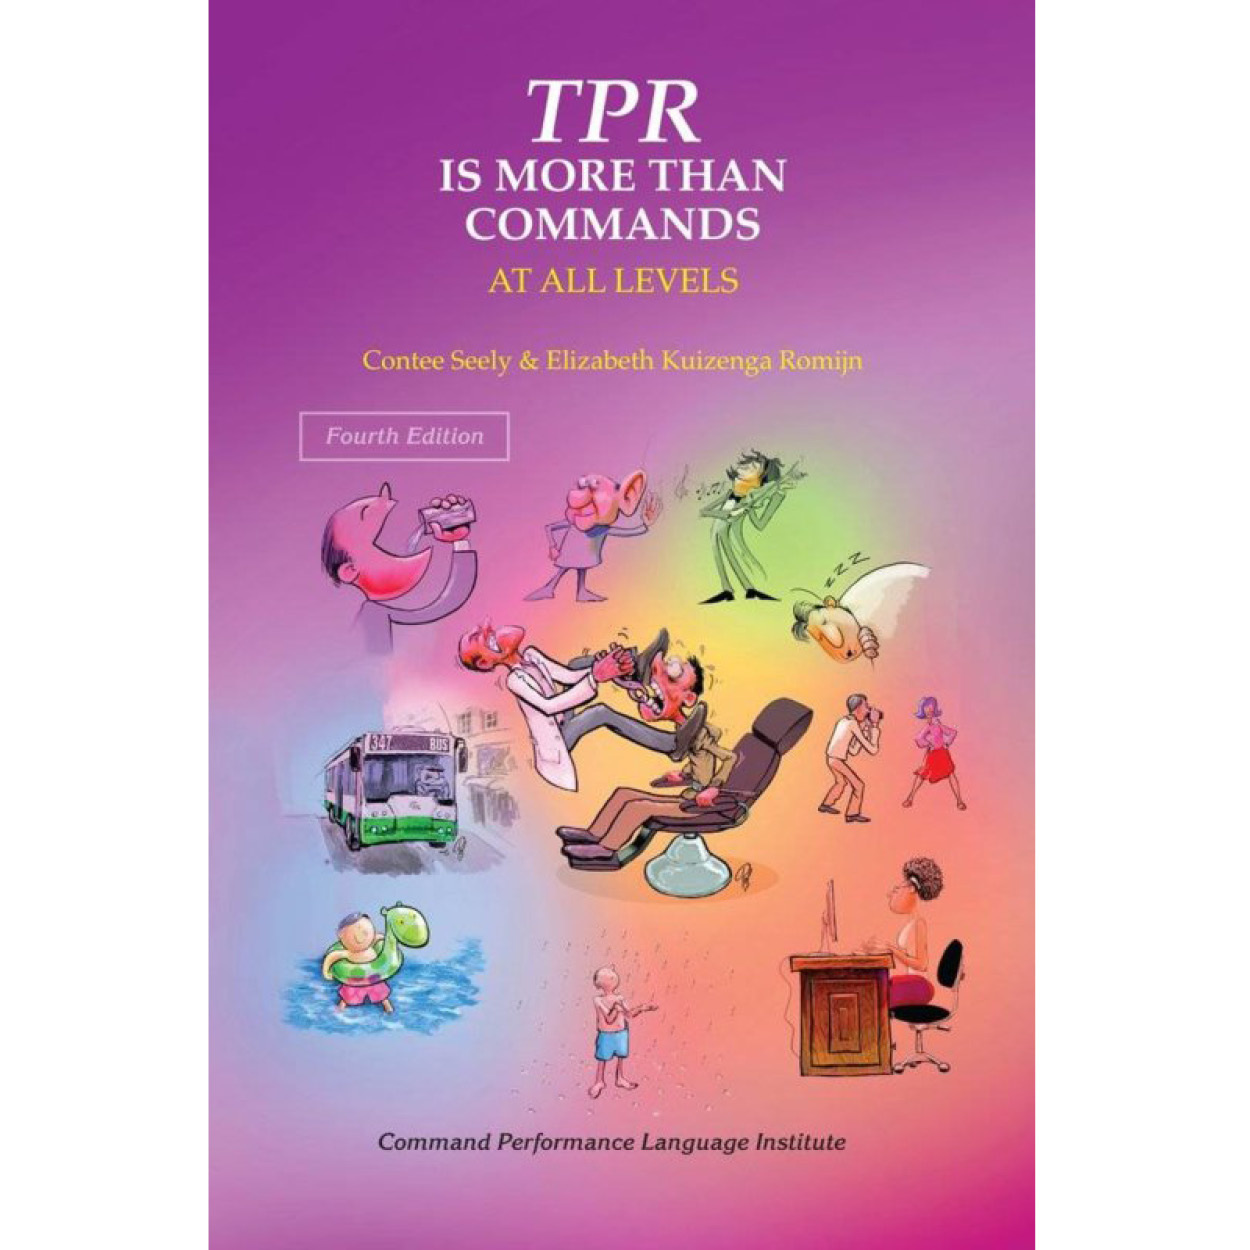 TPR is more than commands - at all levels (4e ed.)